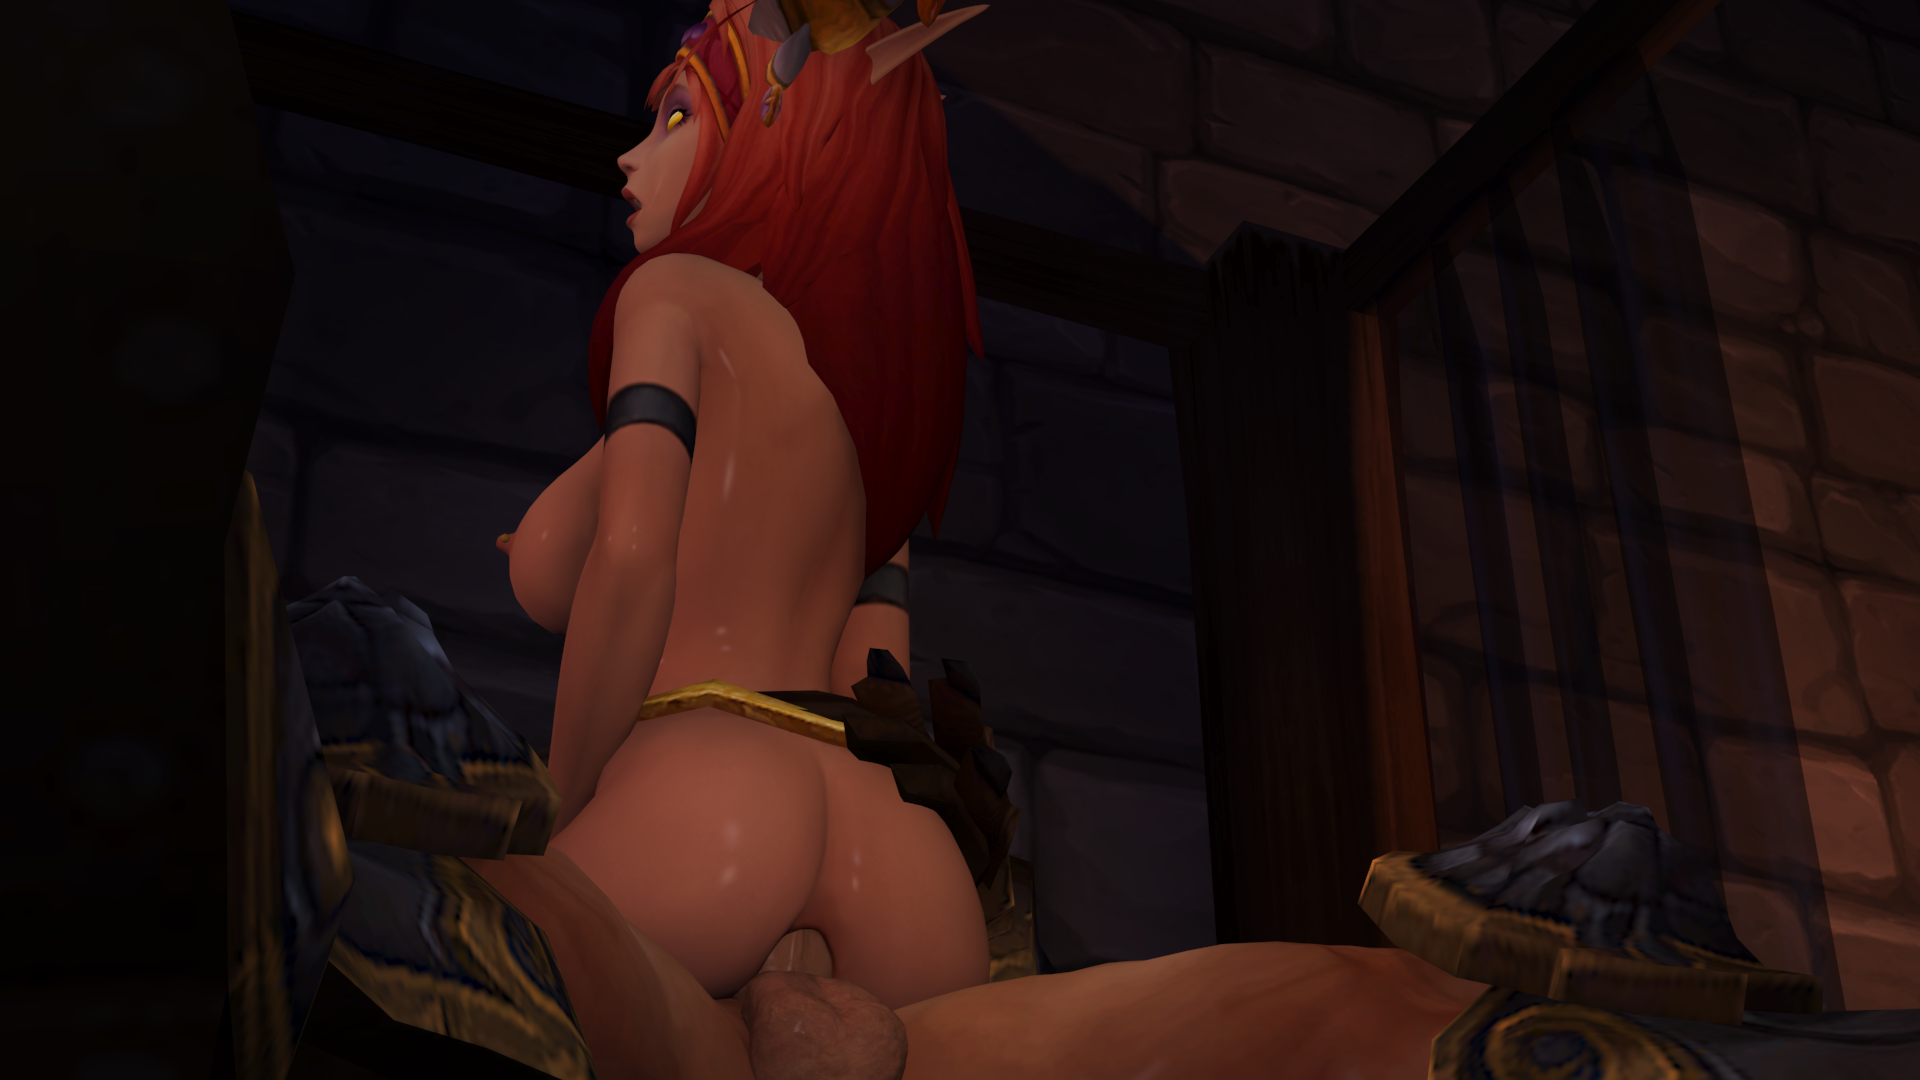 Warcraft porn alexstrasza elf game video hentai clip